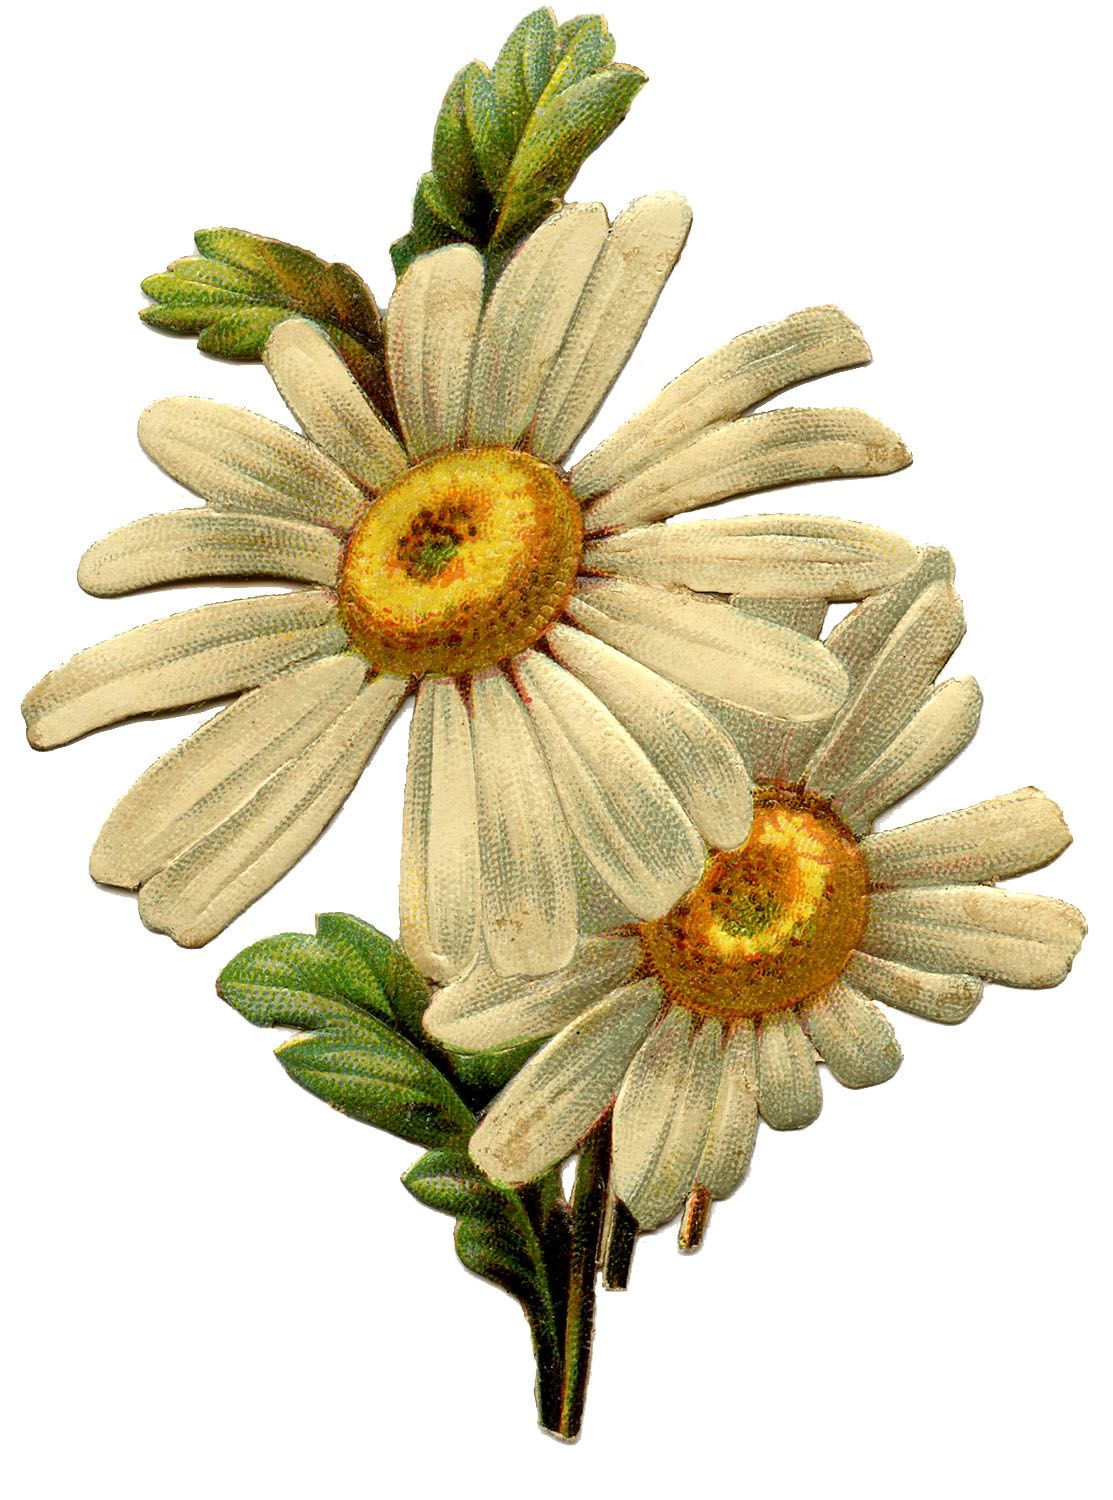 Vintage Daisy Image Graphics fairy, Vintage images and